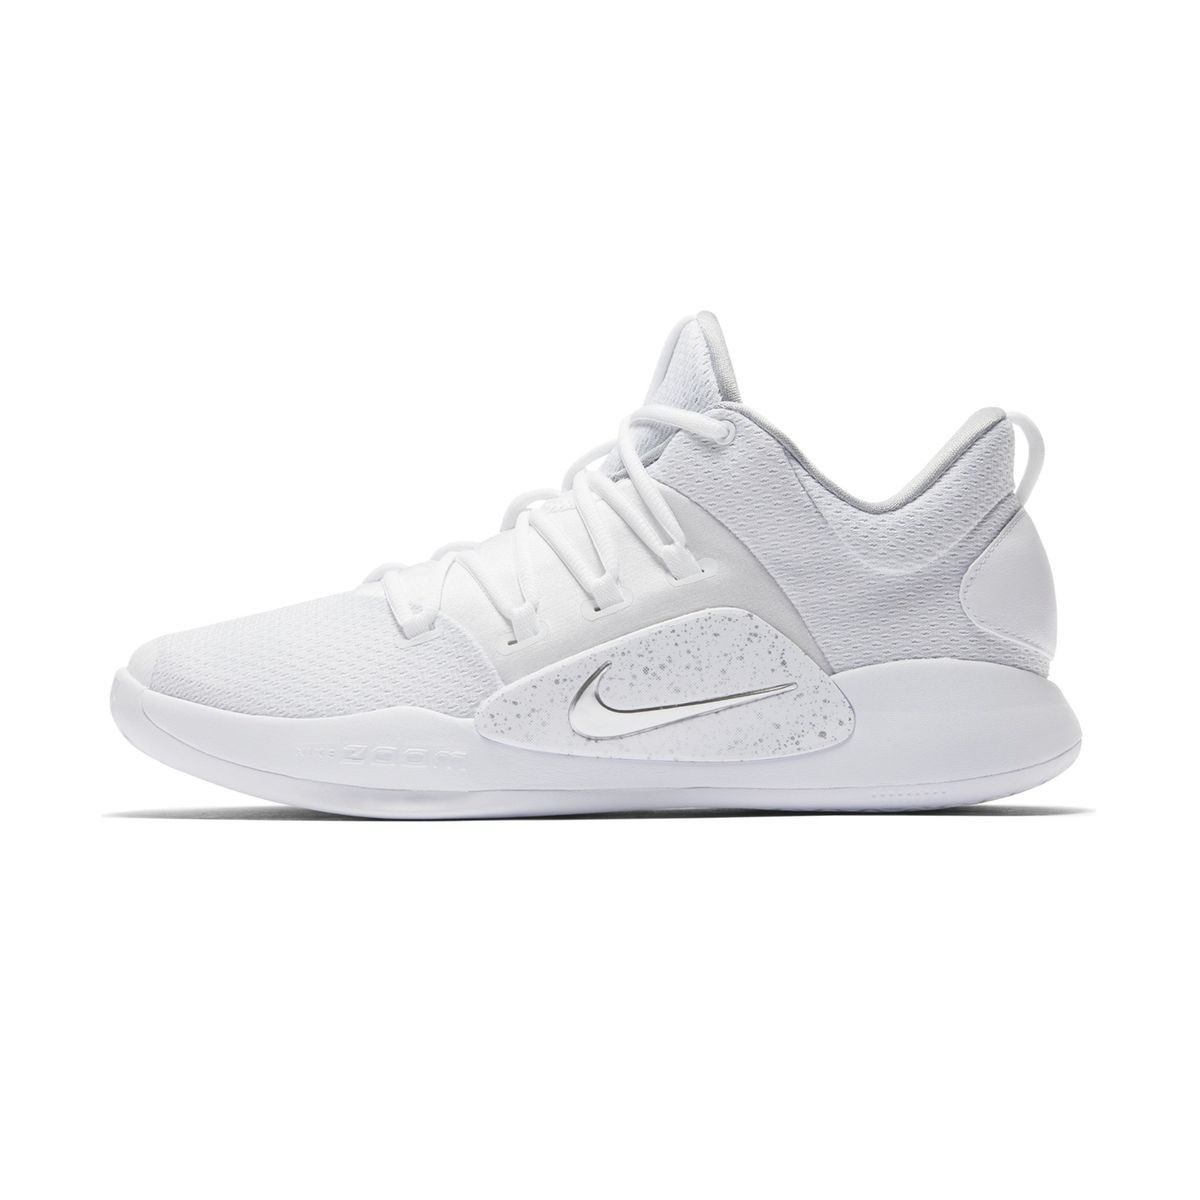 Chaussures Basketball Nike Hyperdunk X Low Blanc Taille